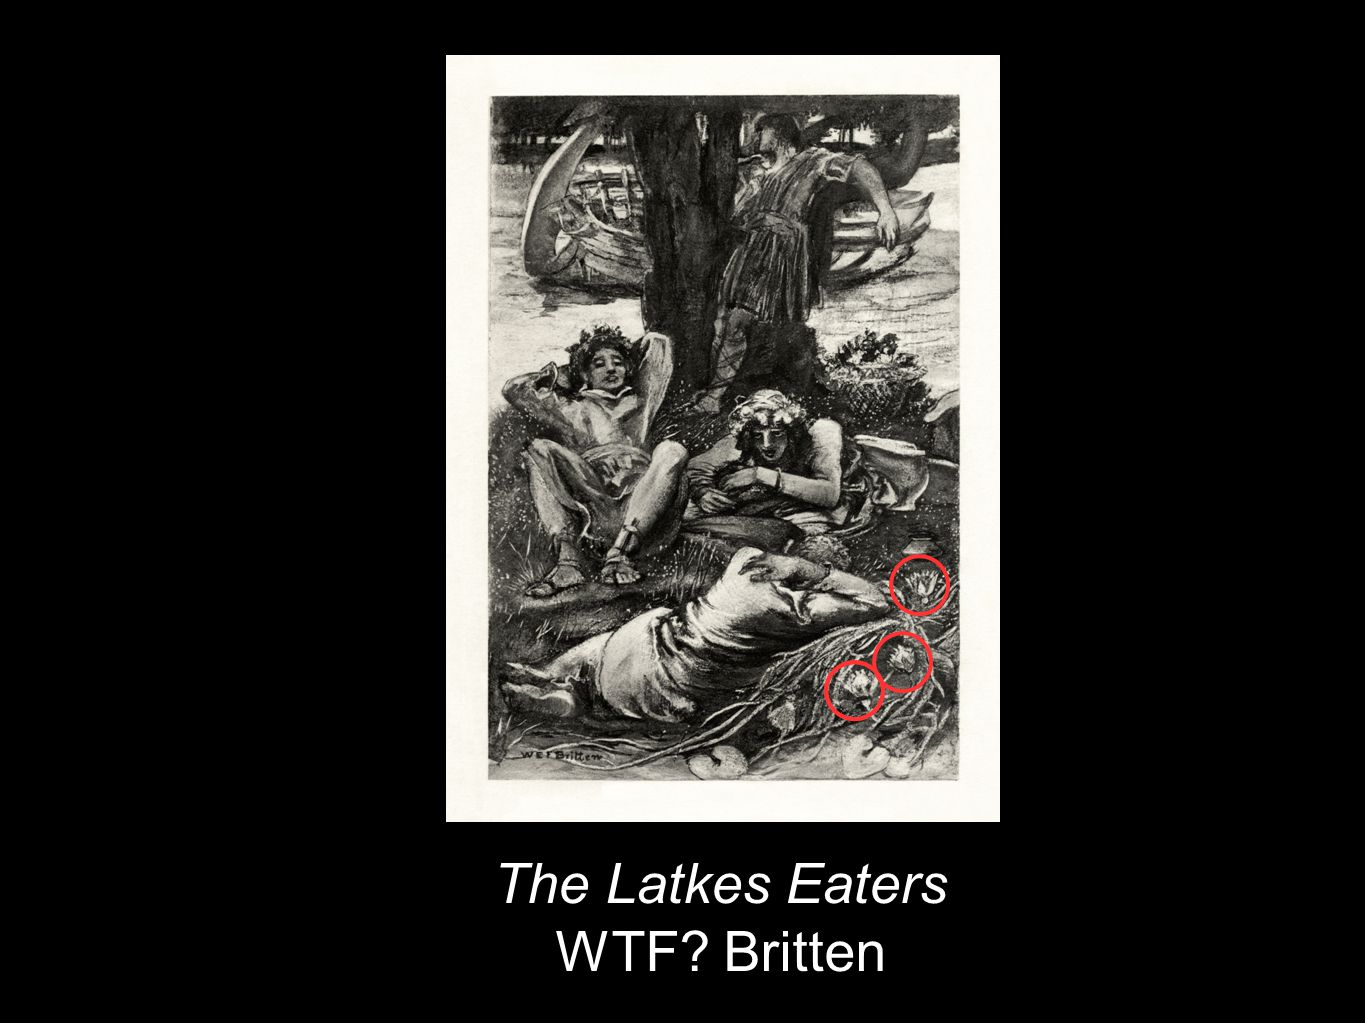 The Latkes Eaters WTF? Britten